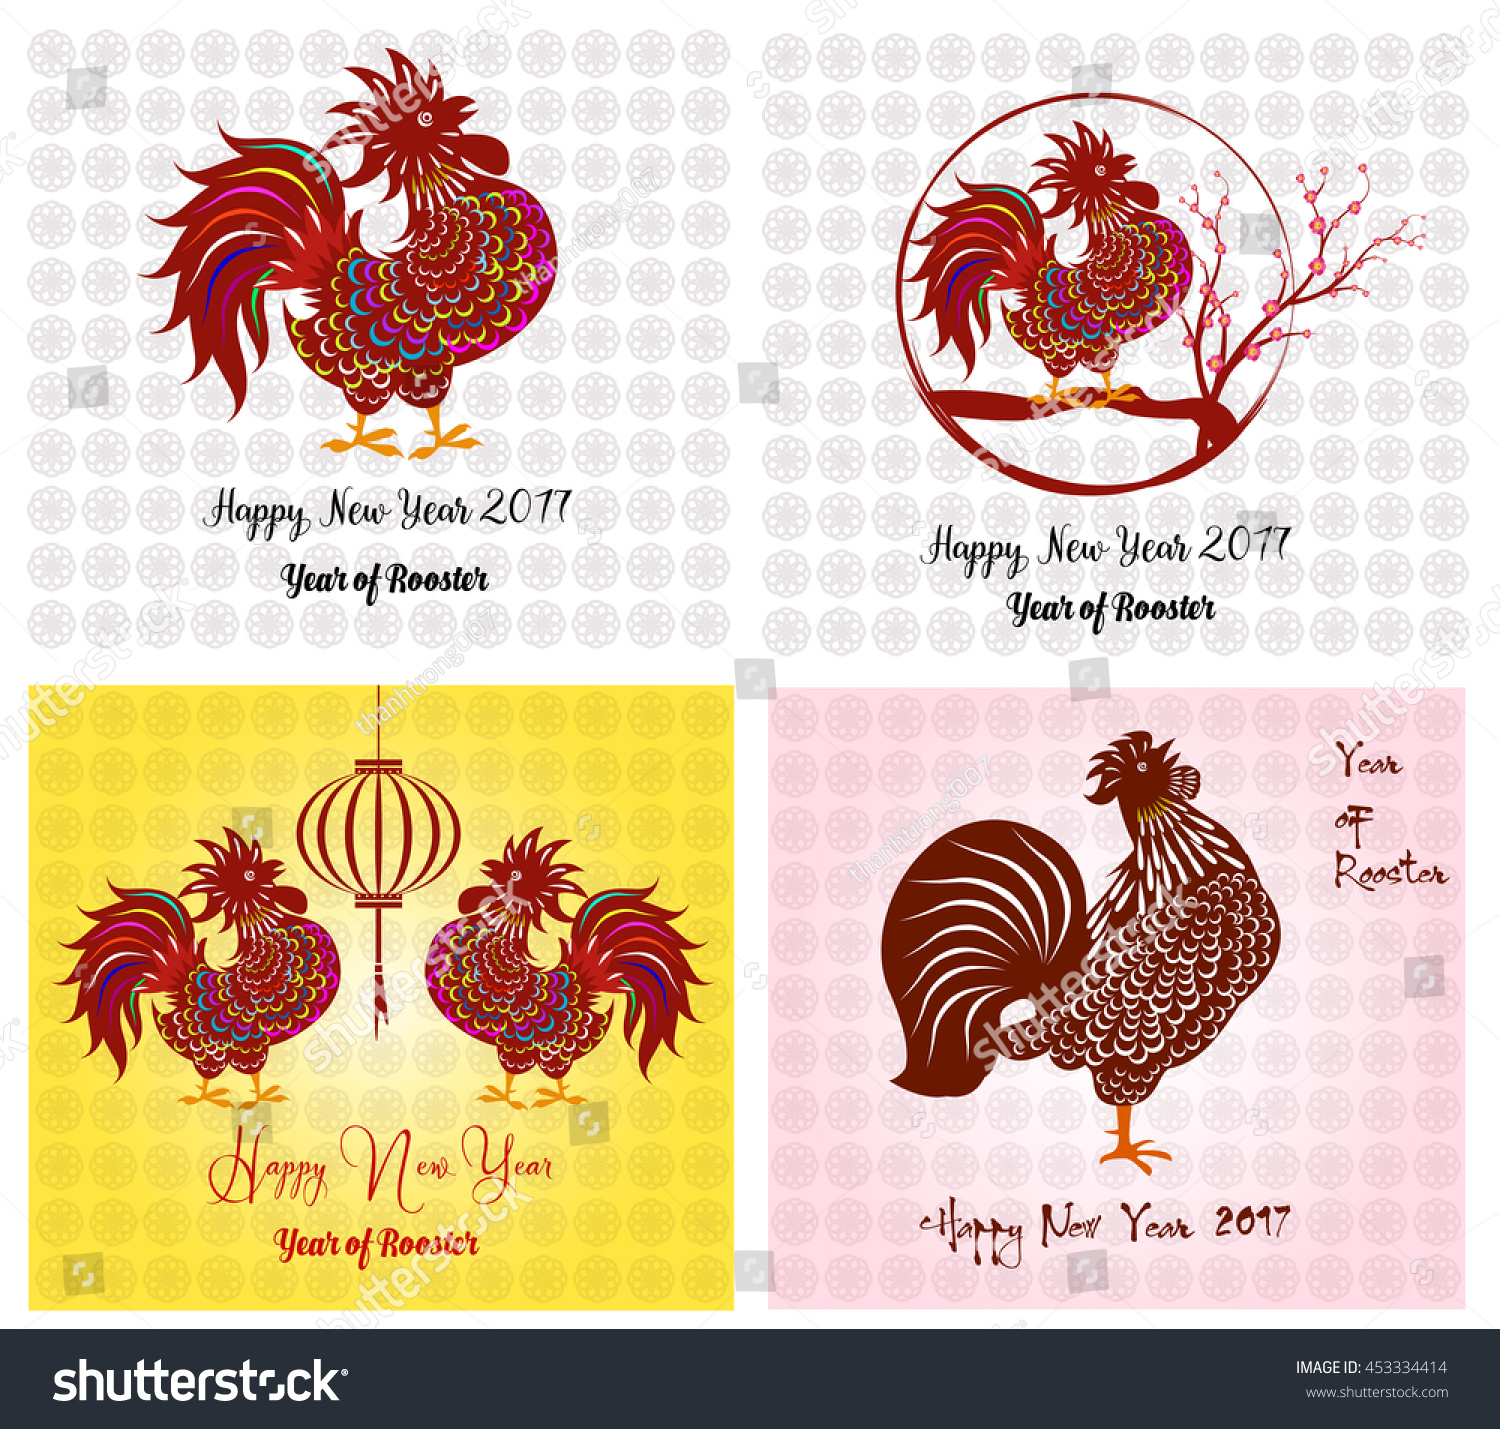 happy new year 2017 year rooster stock vector 453334414